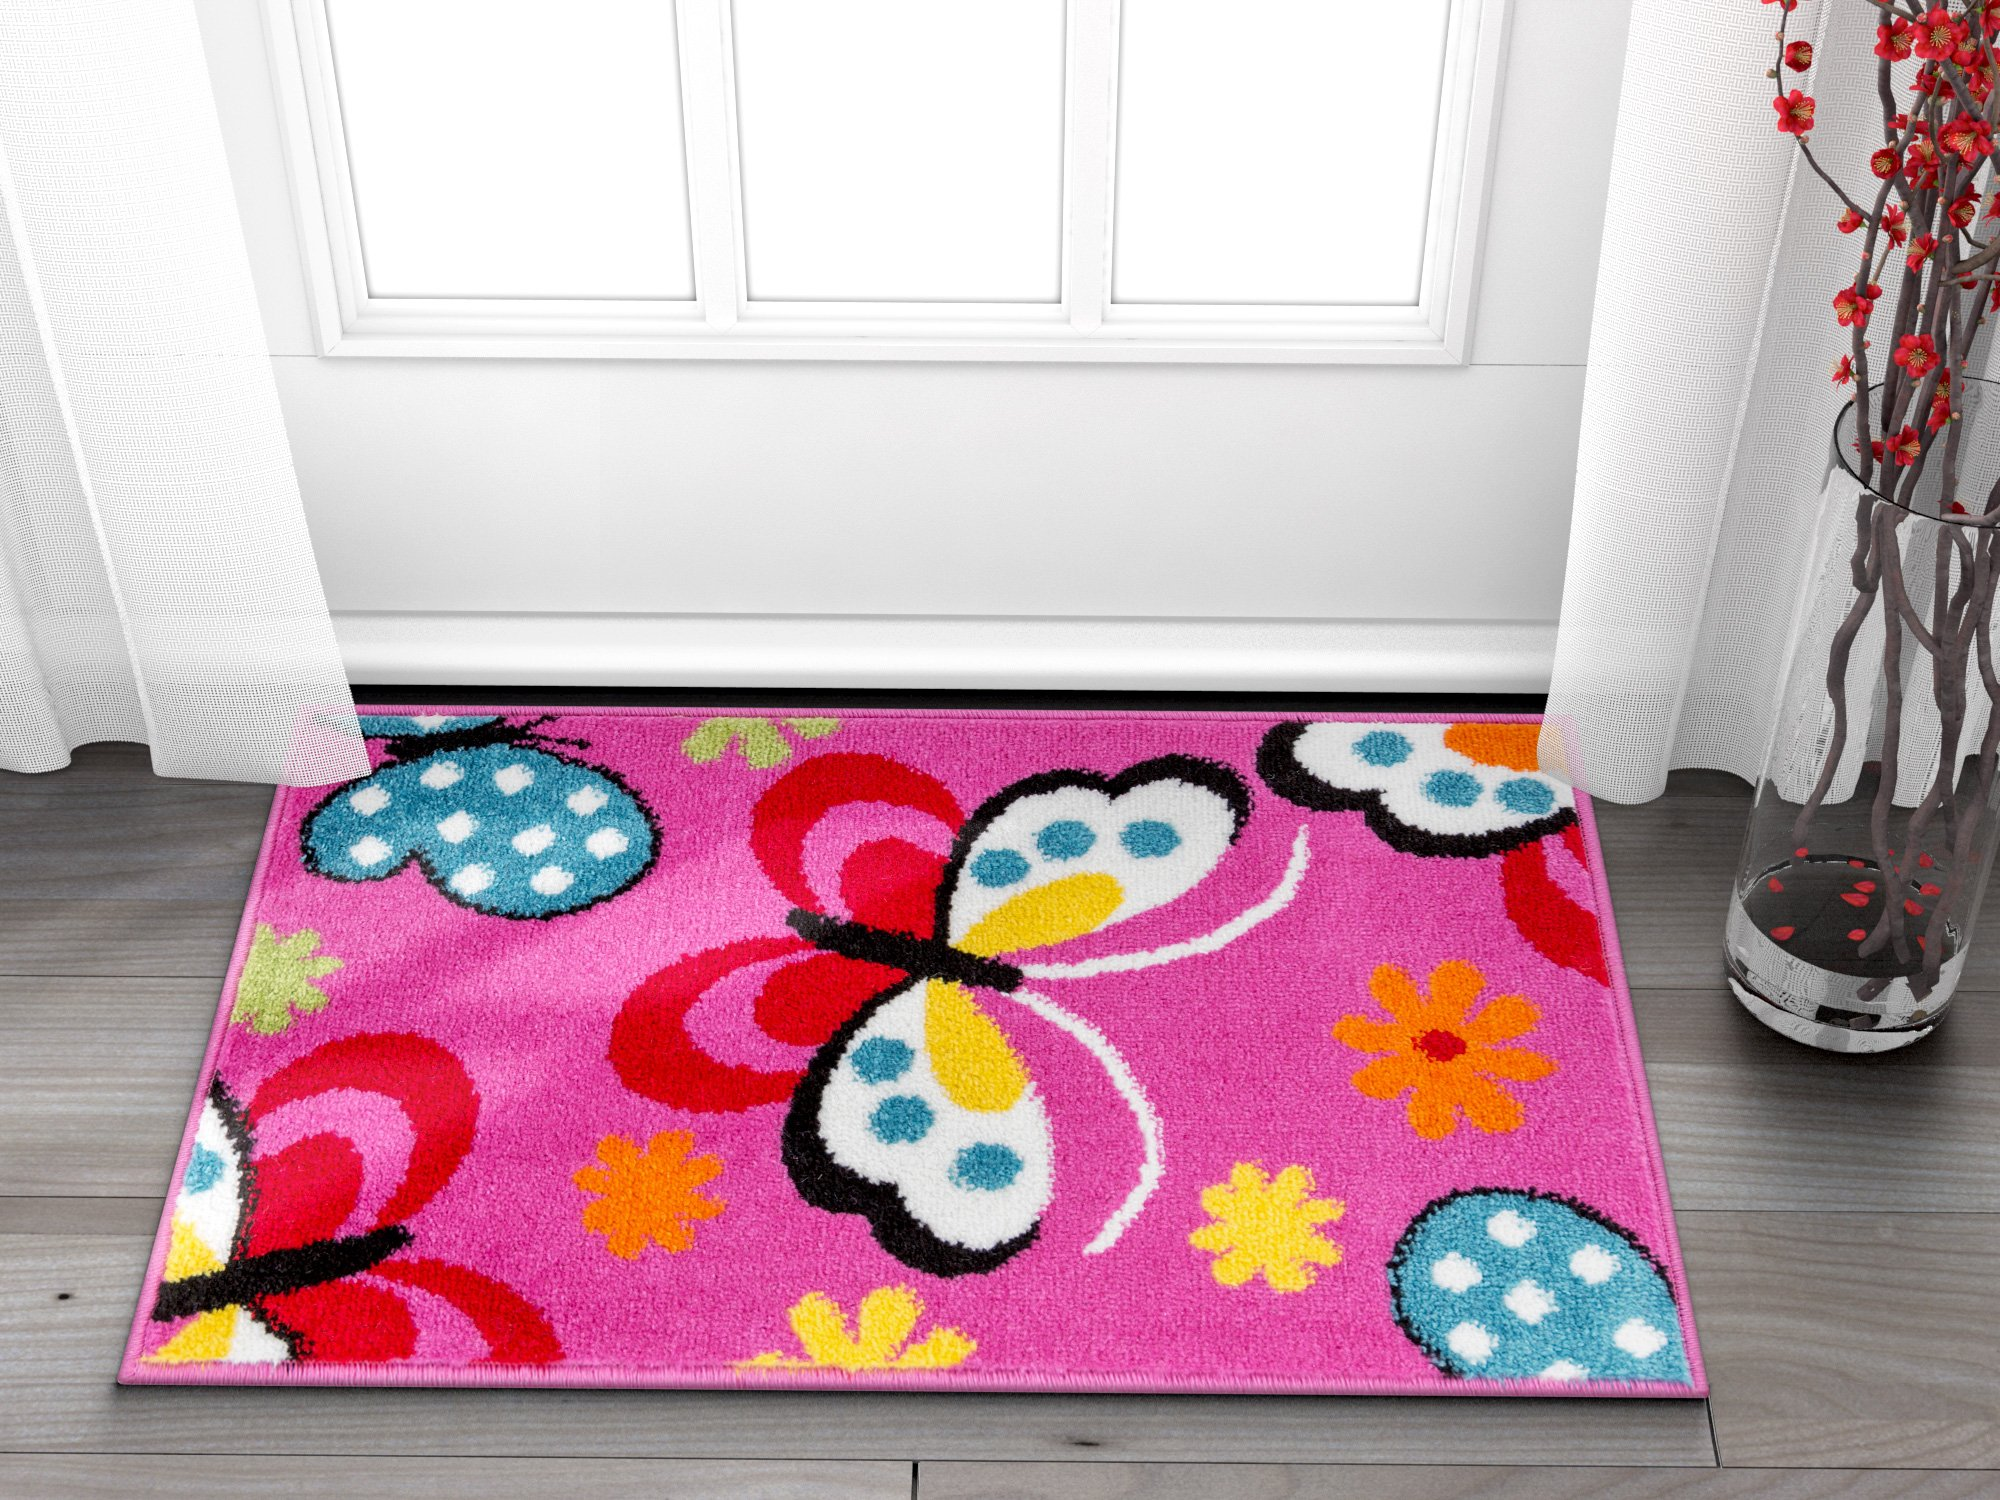 Well Woven Small Rug Mat Doormat Modern Kids Room Kitchen Rug Daisy Butterflies Pink 1'8'' x 2'7'' Accent Area Rug Entry Way Bright Carpet Bathroom Soft Durable